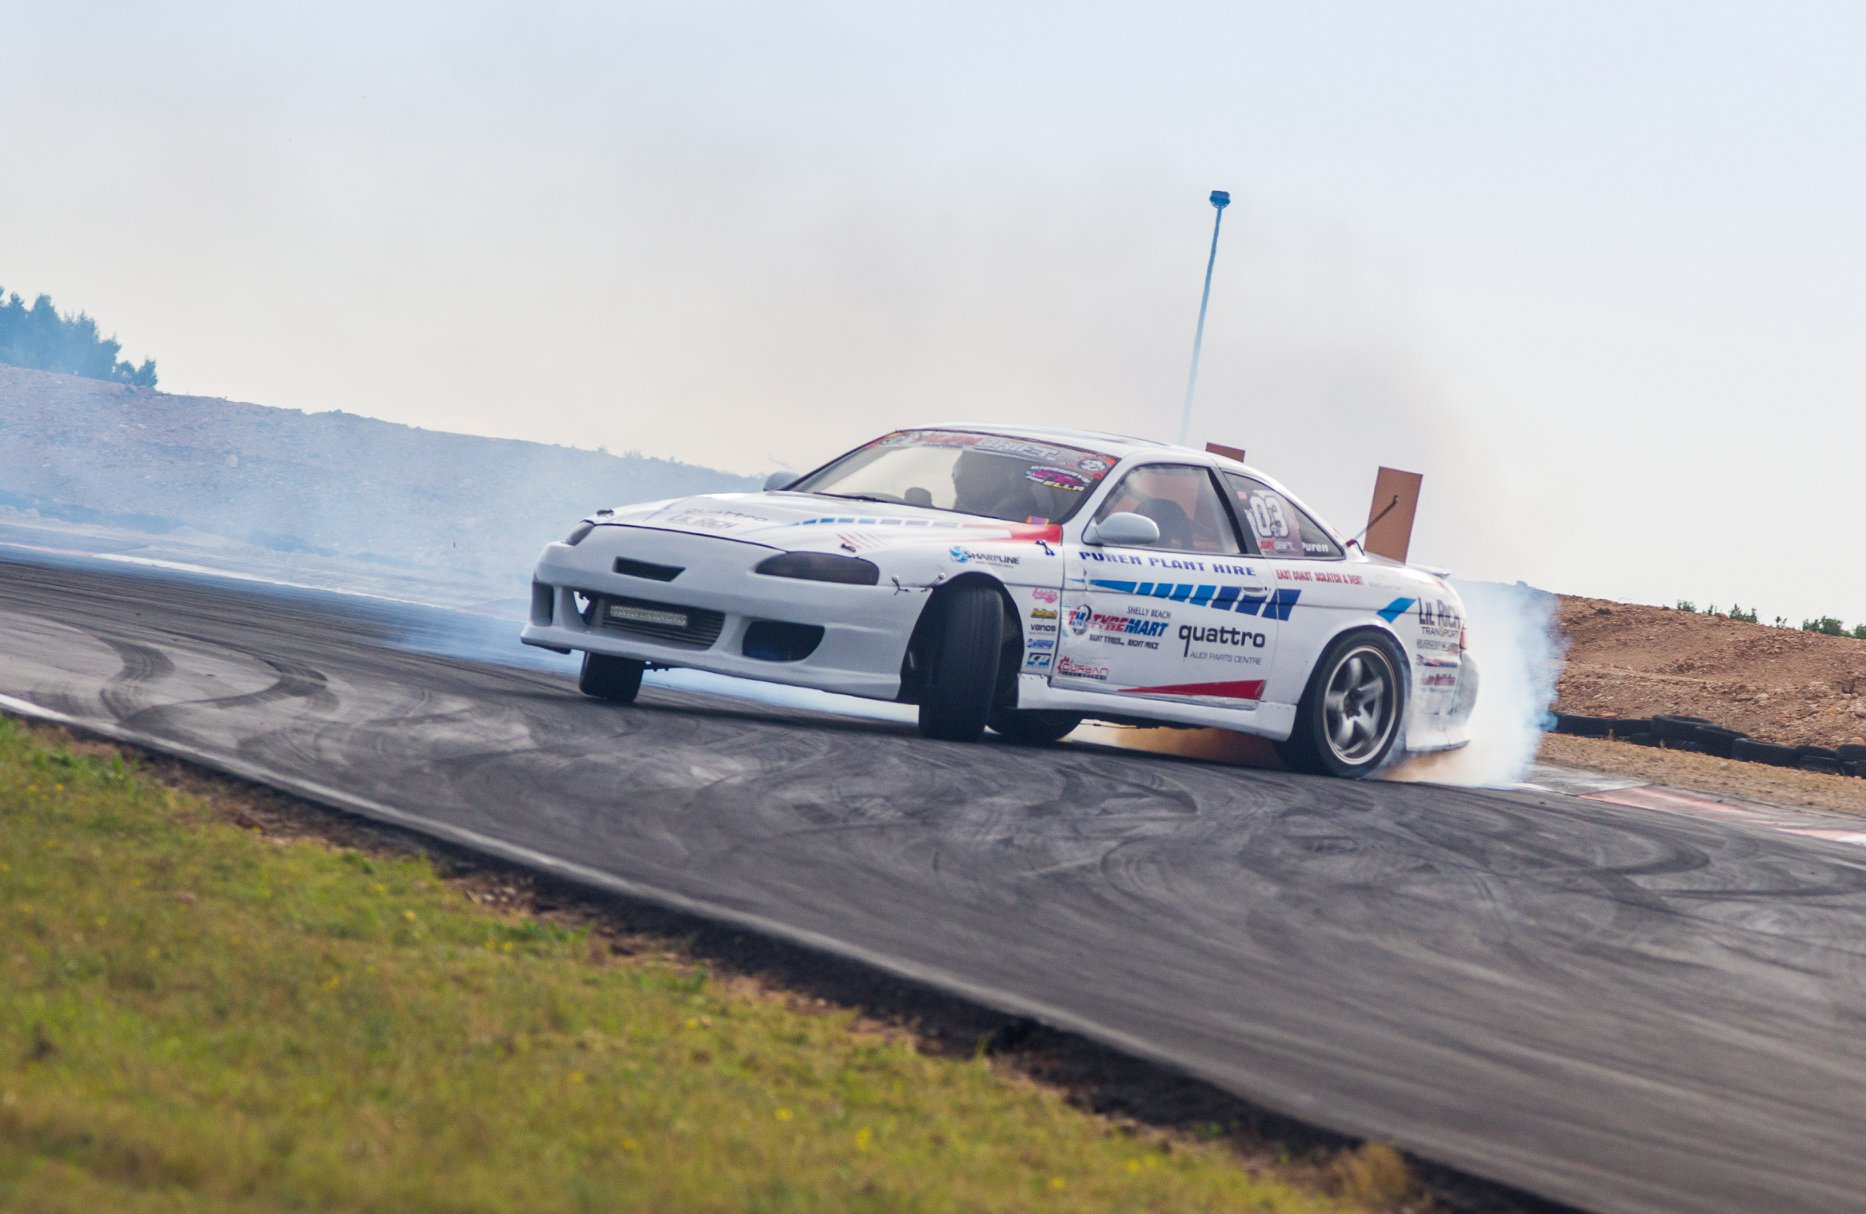 Gavin Puren drifting to 2nd place at Round 4 of the 2018 SupaDrift Series